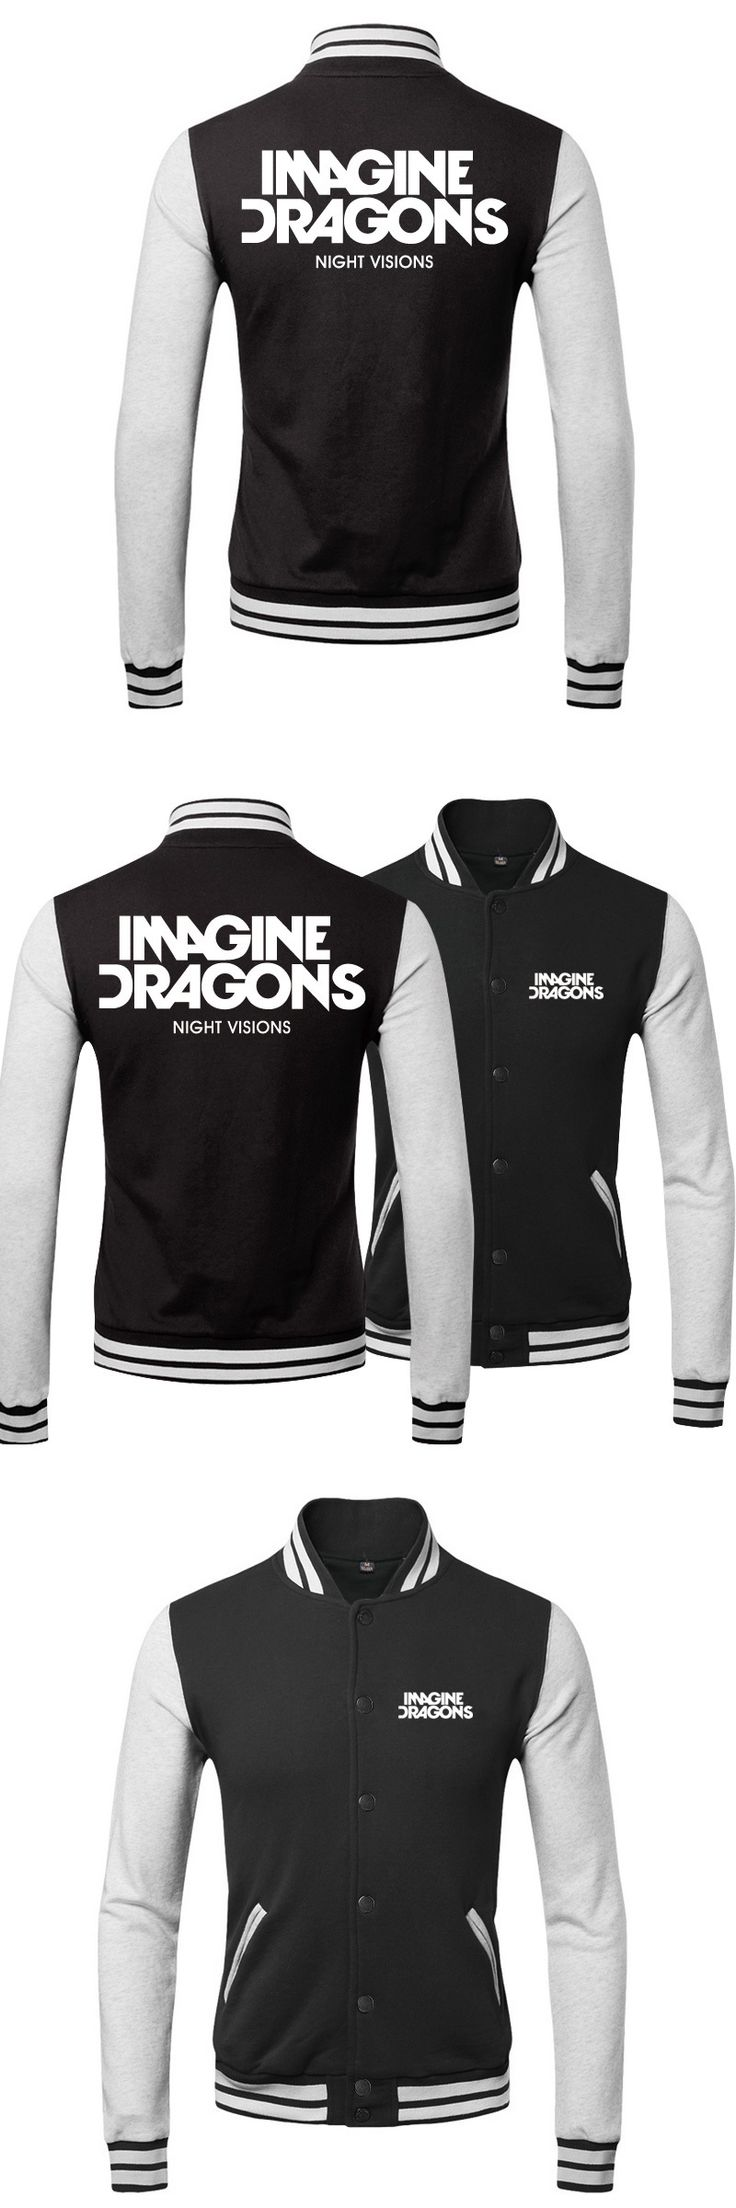 hot sell 2015 imagine dragons band simple autumn and winter warmth insider lover`s baseball uniform cardigan fleece Hoodie